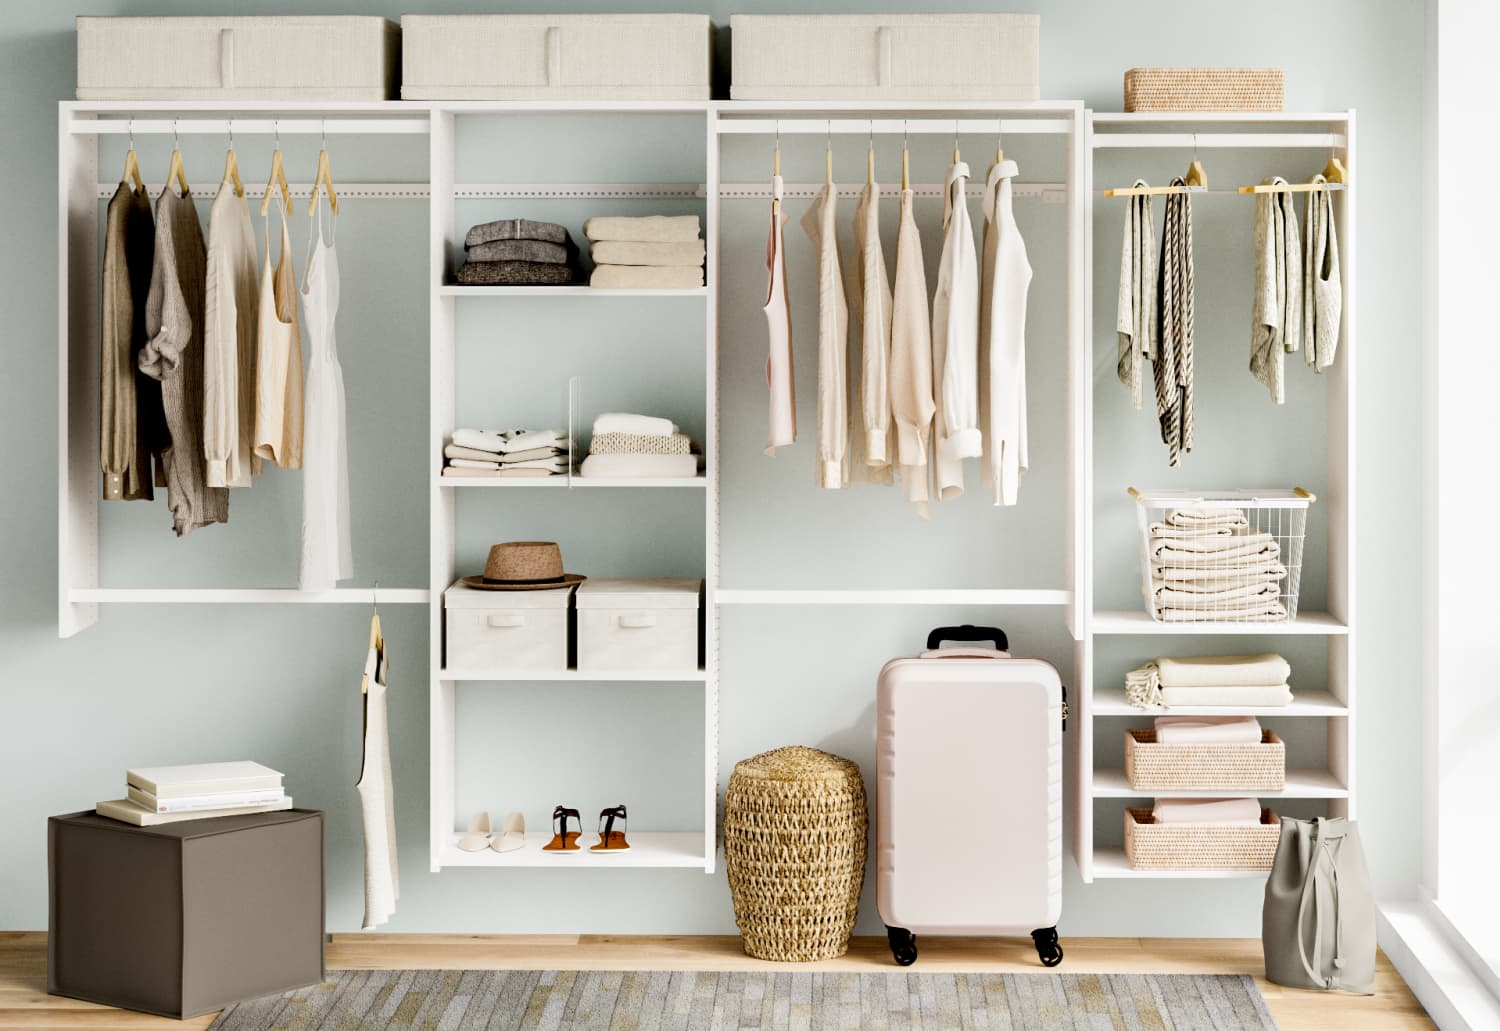 Attention: Wayfair Just Launched Their Own Organization and Storage Line, And It's Glorious